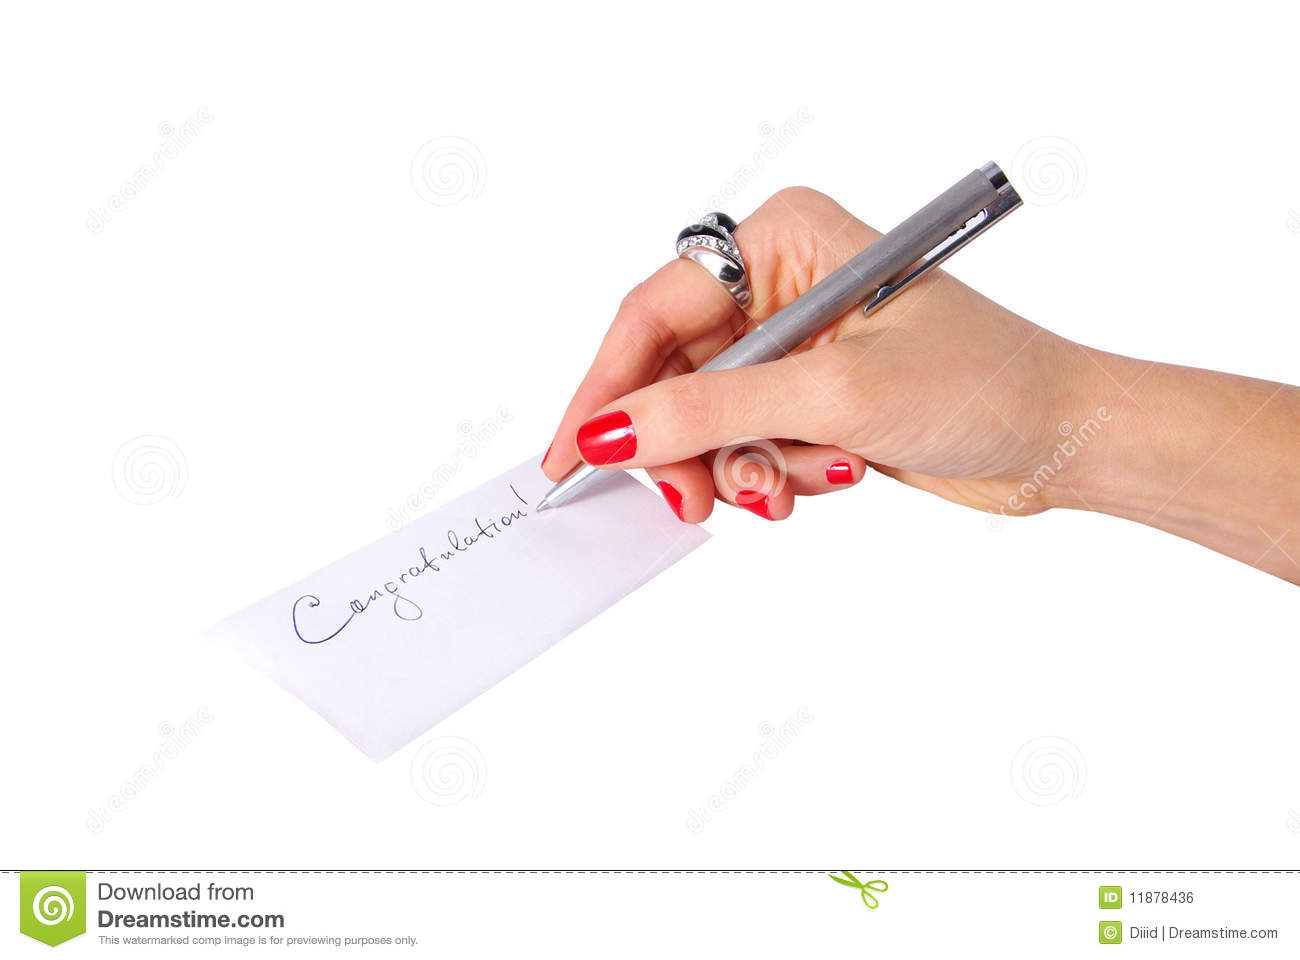 how to write note on photo